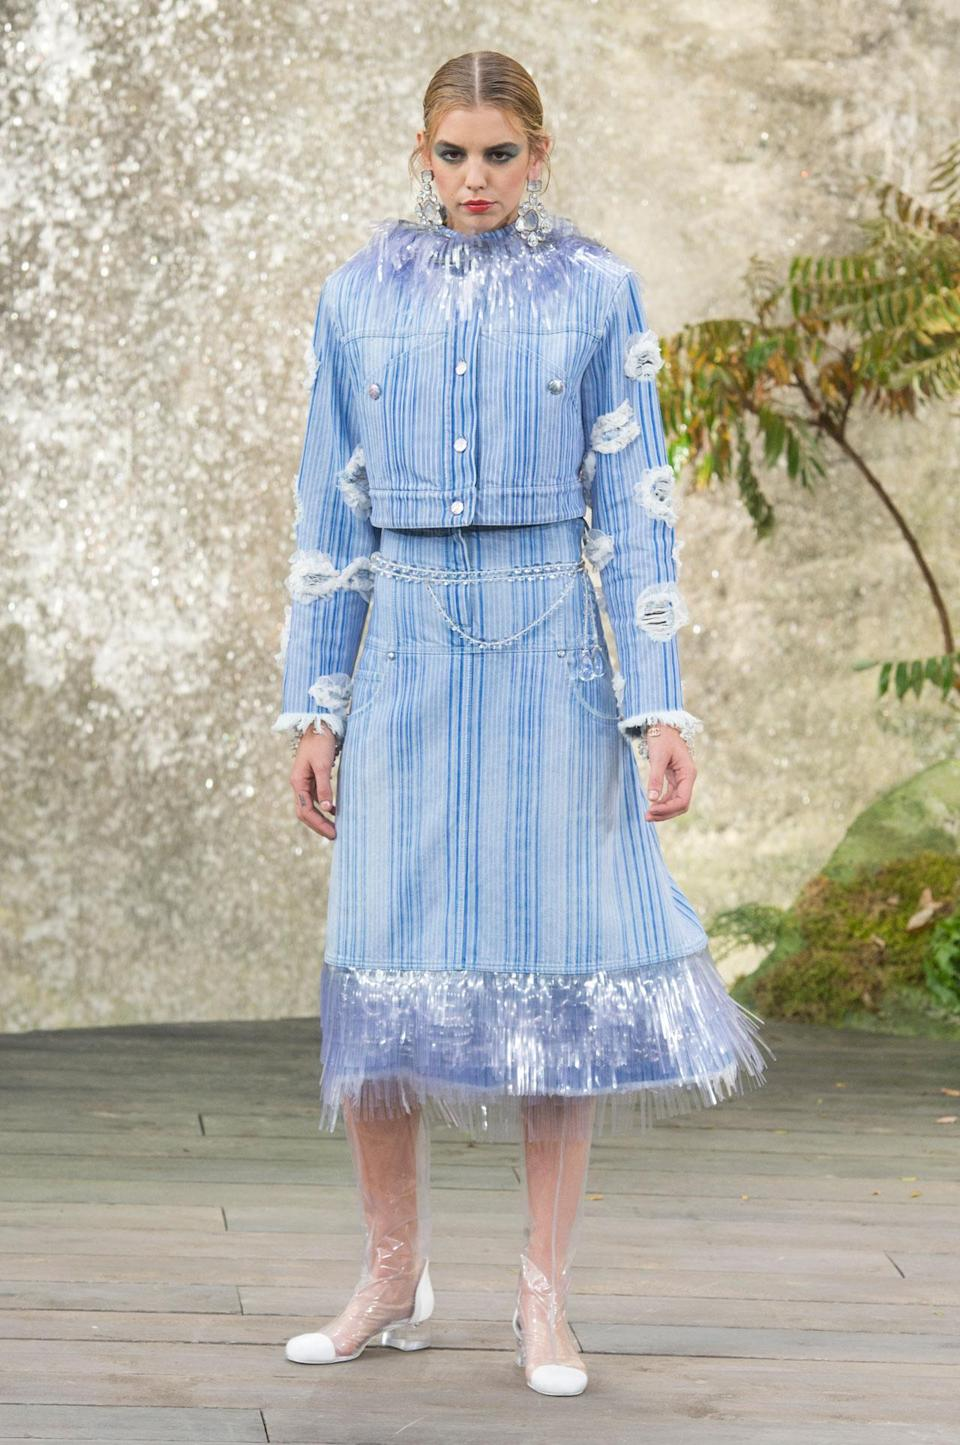 <p>A light wash striped jacket and skirt with PVC fringe and floral appliqués was a standout at the SS18 Chanel show. (Photo: ImaxTree) </p>